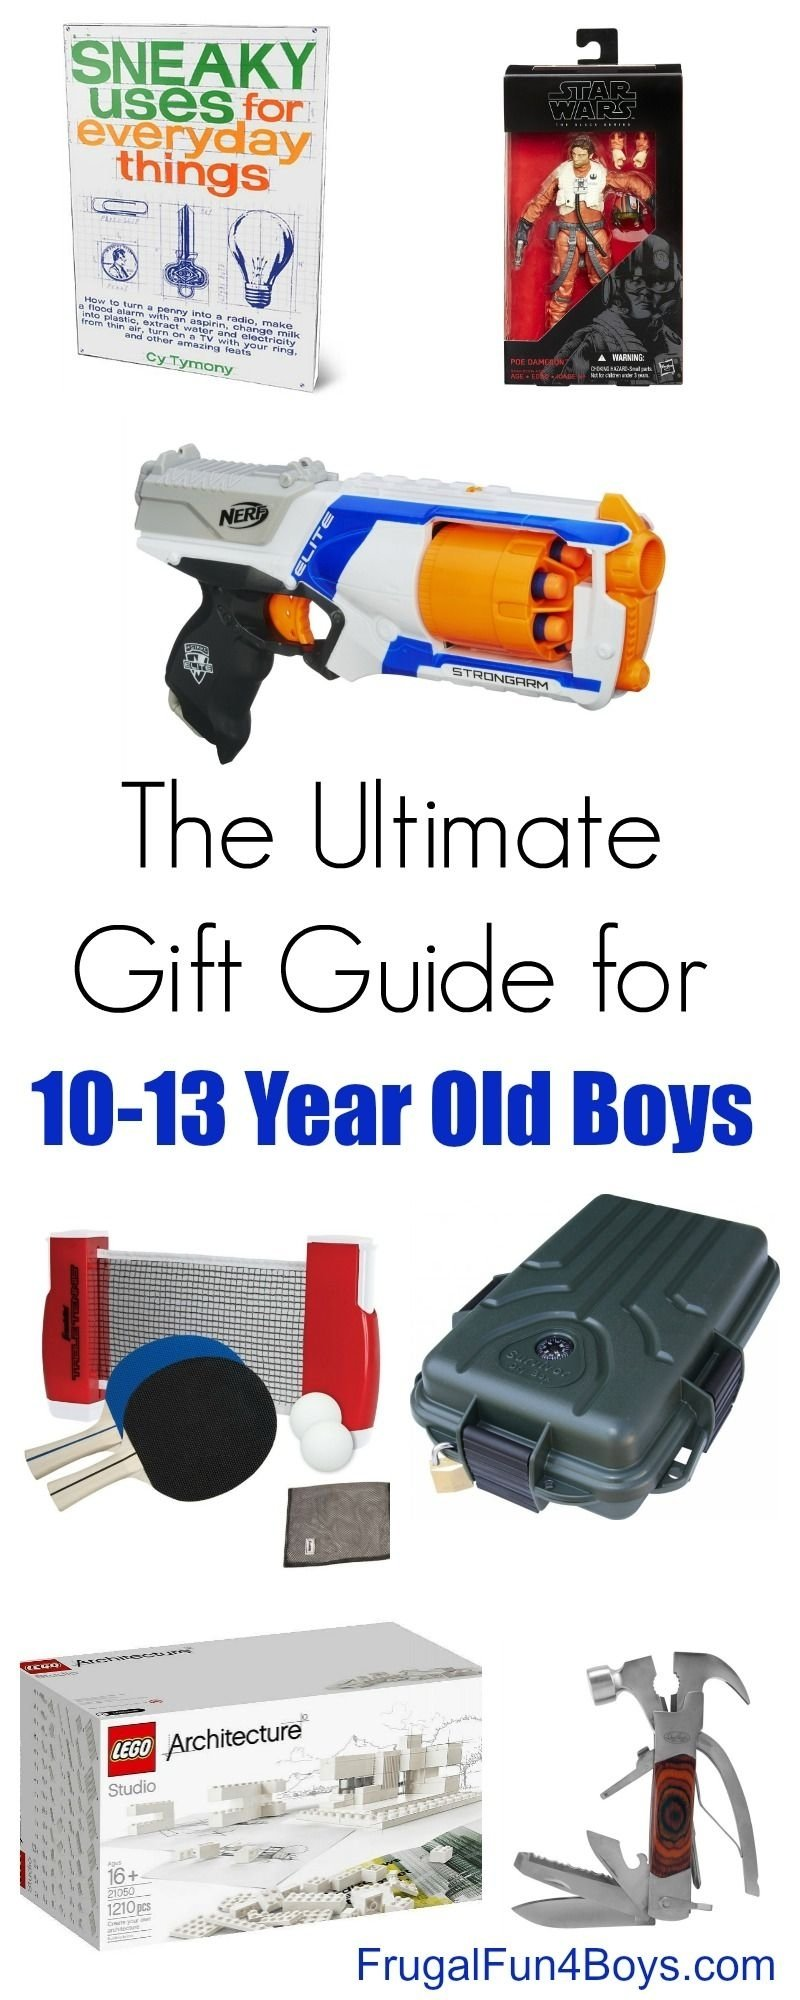 10 Trendy 13 Year Old Christmas Ideas gift ideas for 10 to 13 year old boys gaming gift and books 1 2021